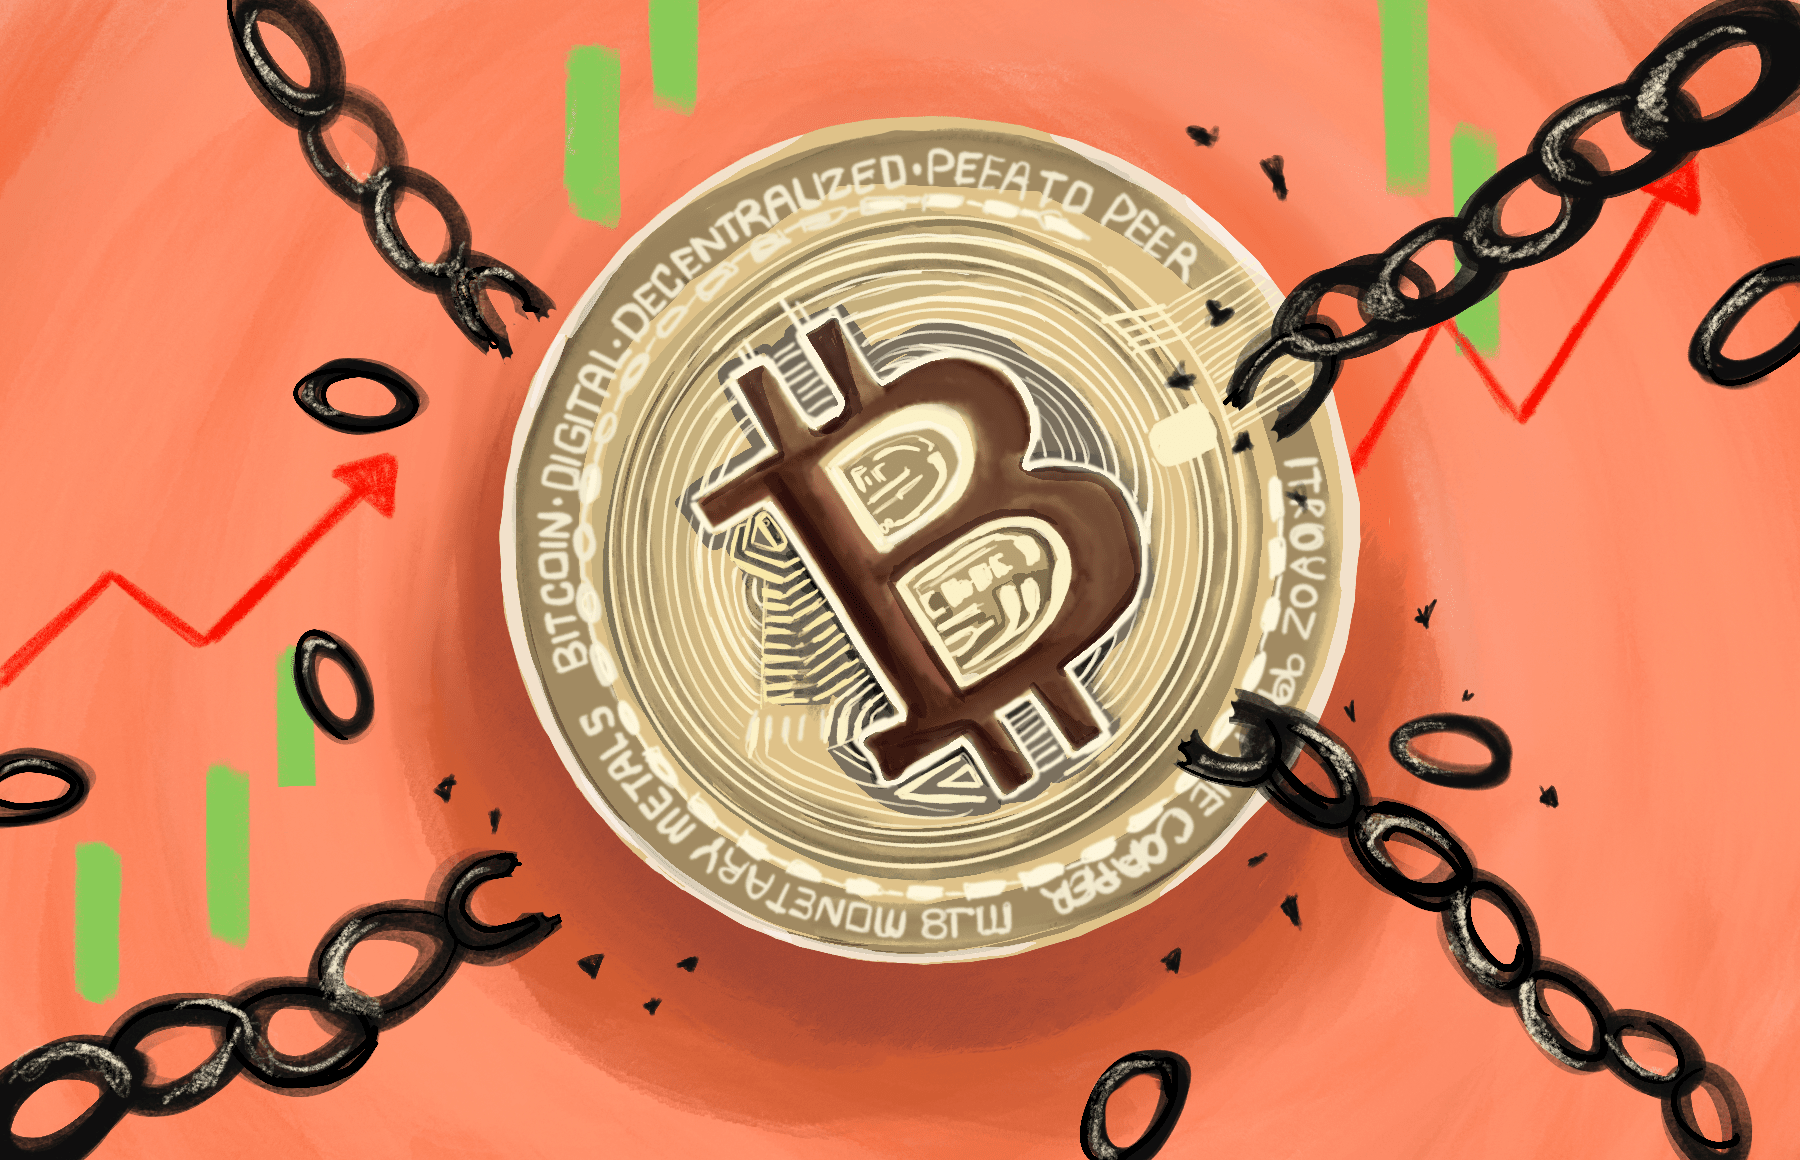 Rooting out racial economic inequality: Bitcoin's potential as a means of combatting discrimination in US